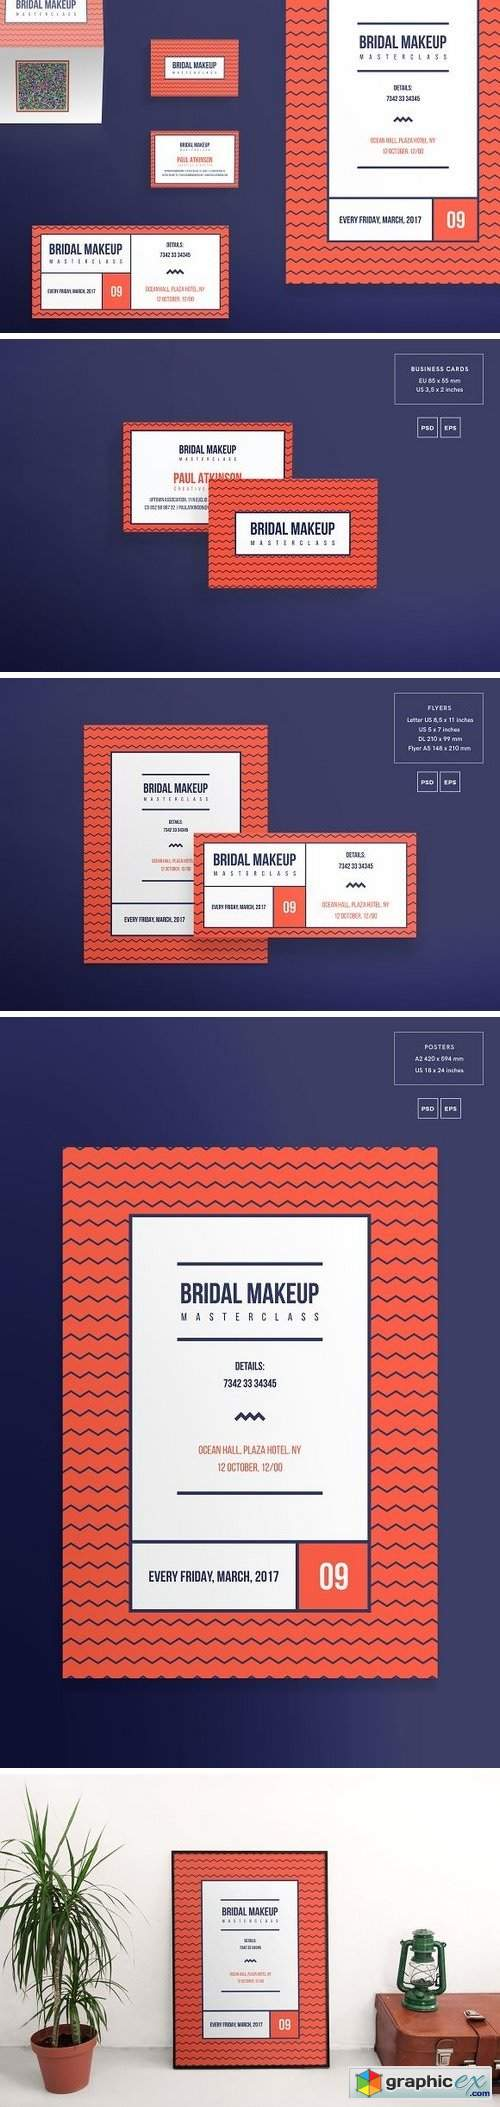 Print Pack | Bridal Makeup